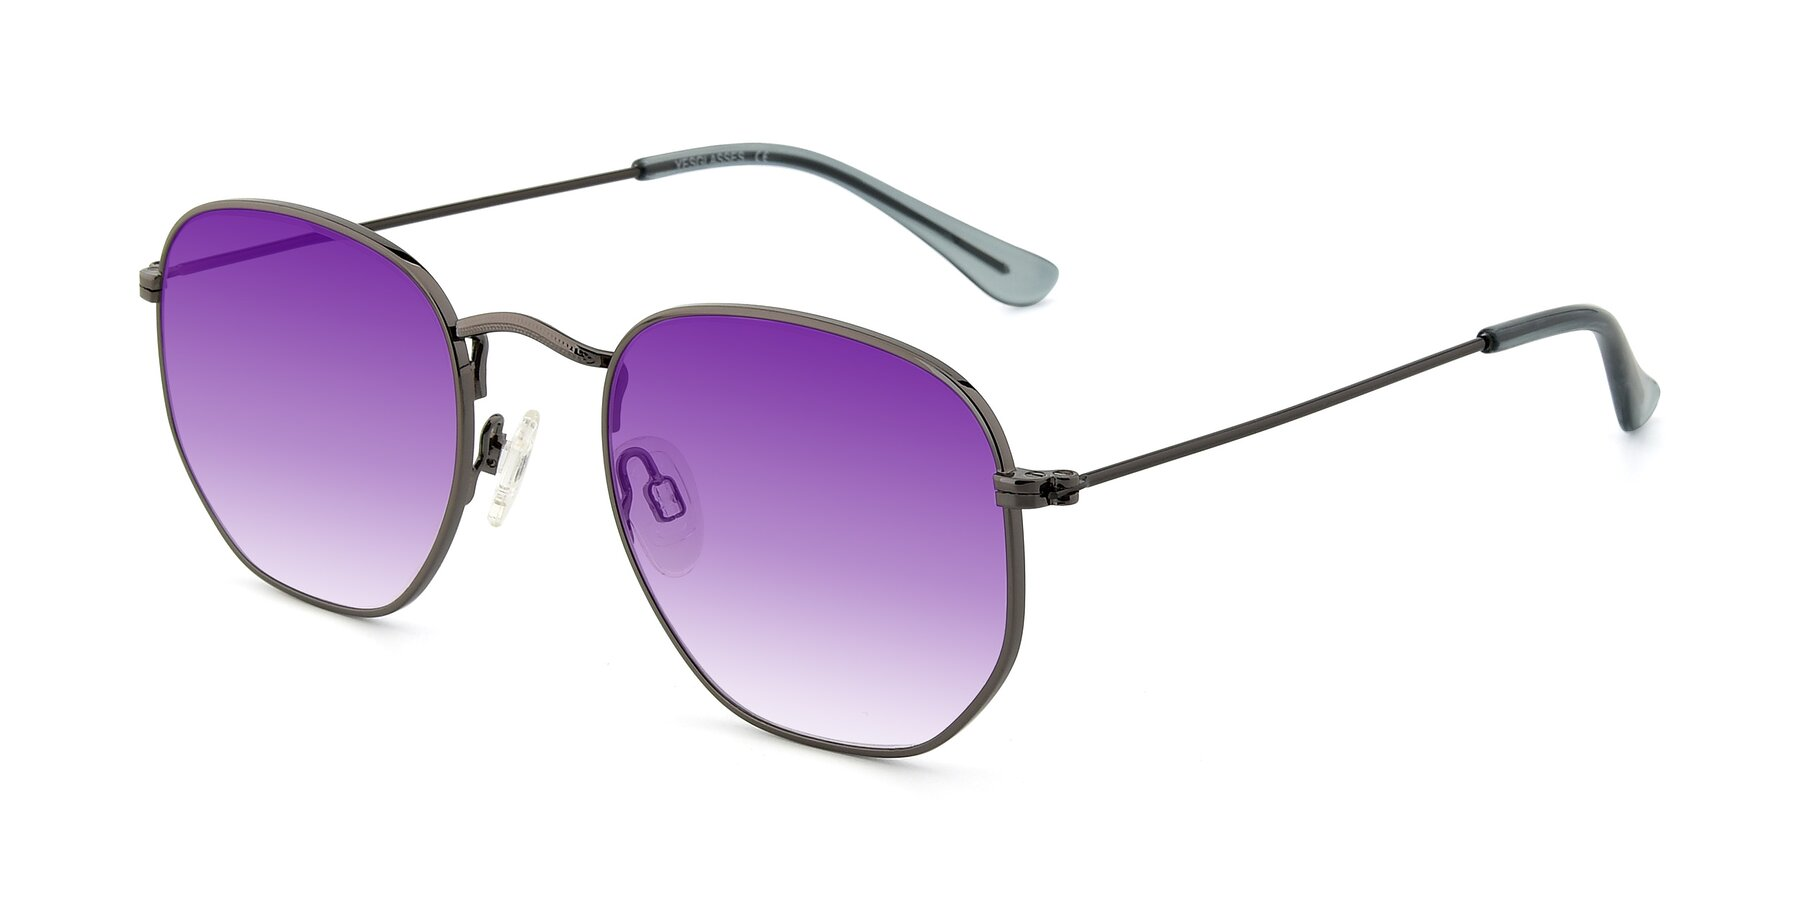 Angle of SSR1944 in Grey with Purple Gradient Lenses